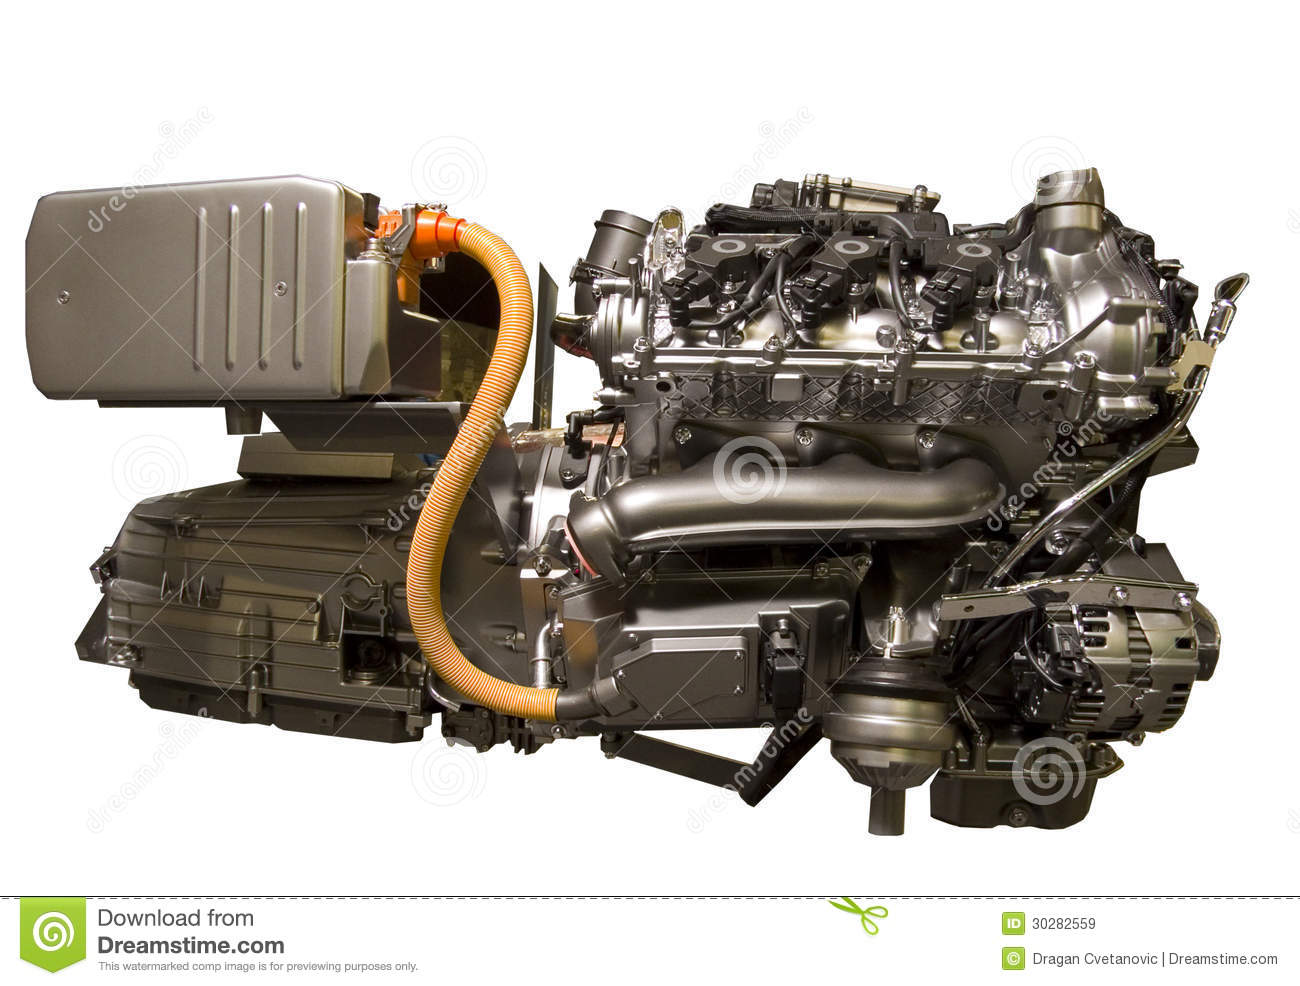 Hybrid Car Engine From S-class Mercedes Stock Image - Image